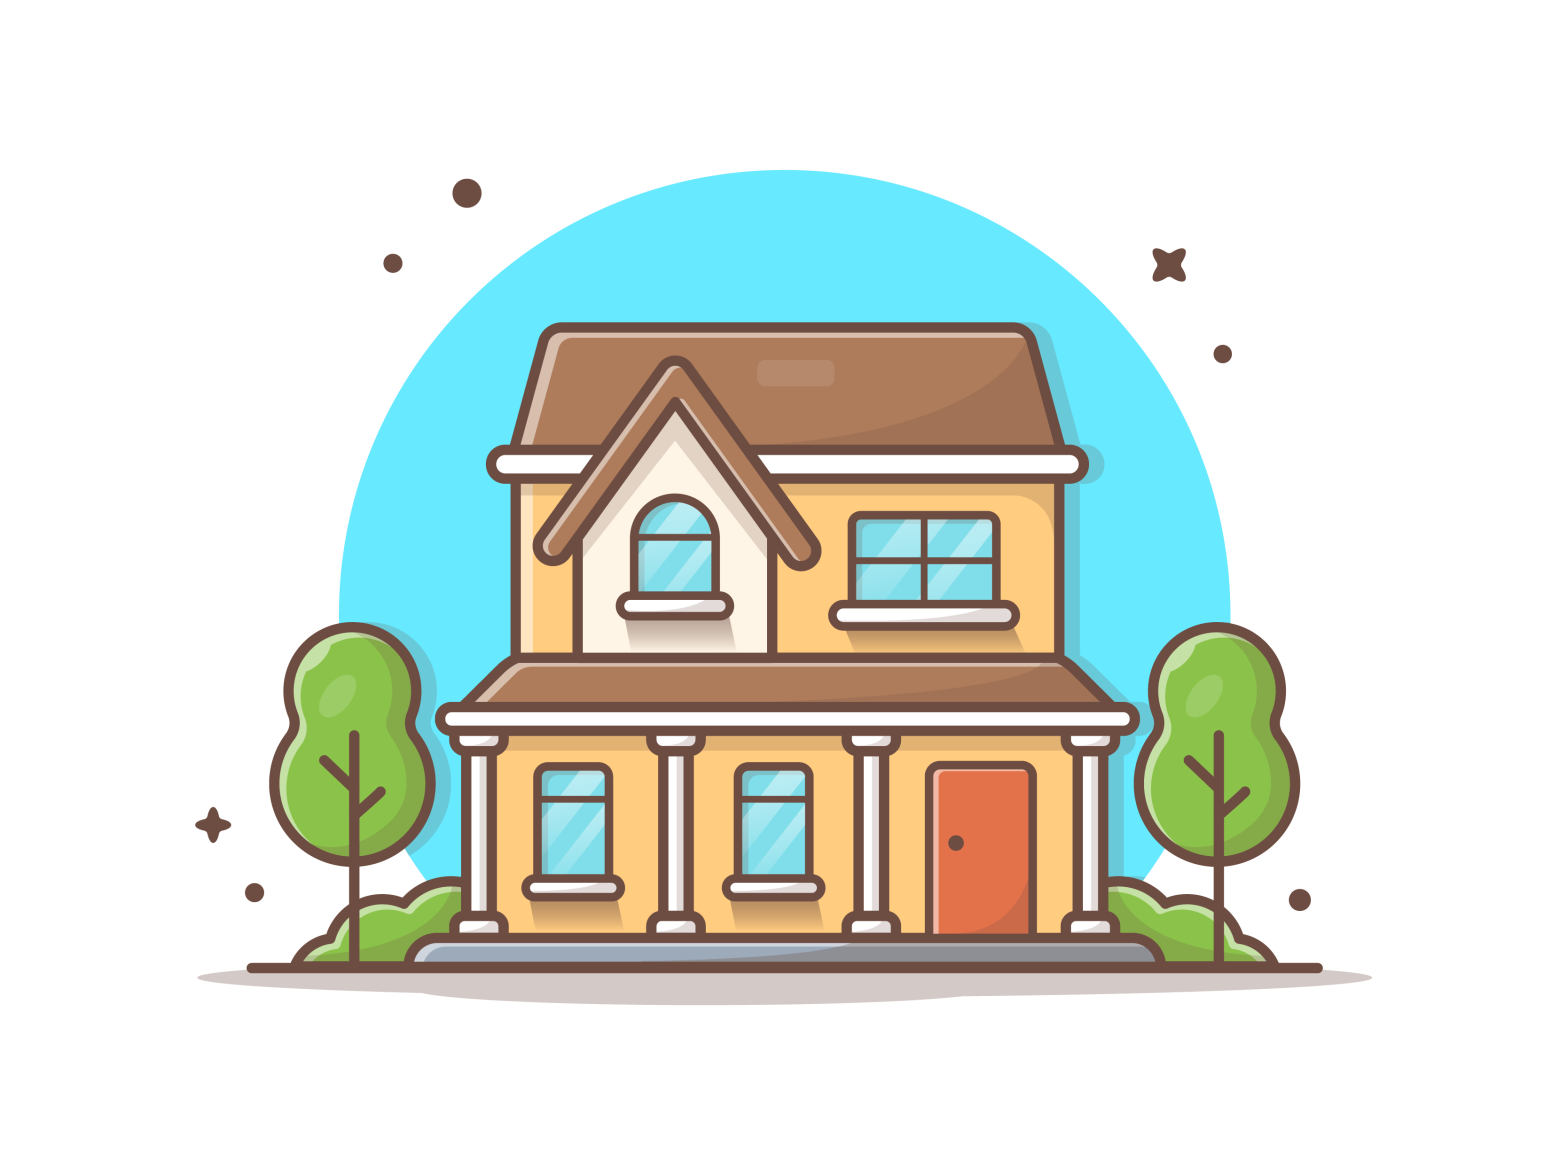 Another House 🏡 🤓 Line icon, Building illustration